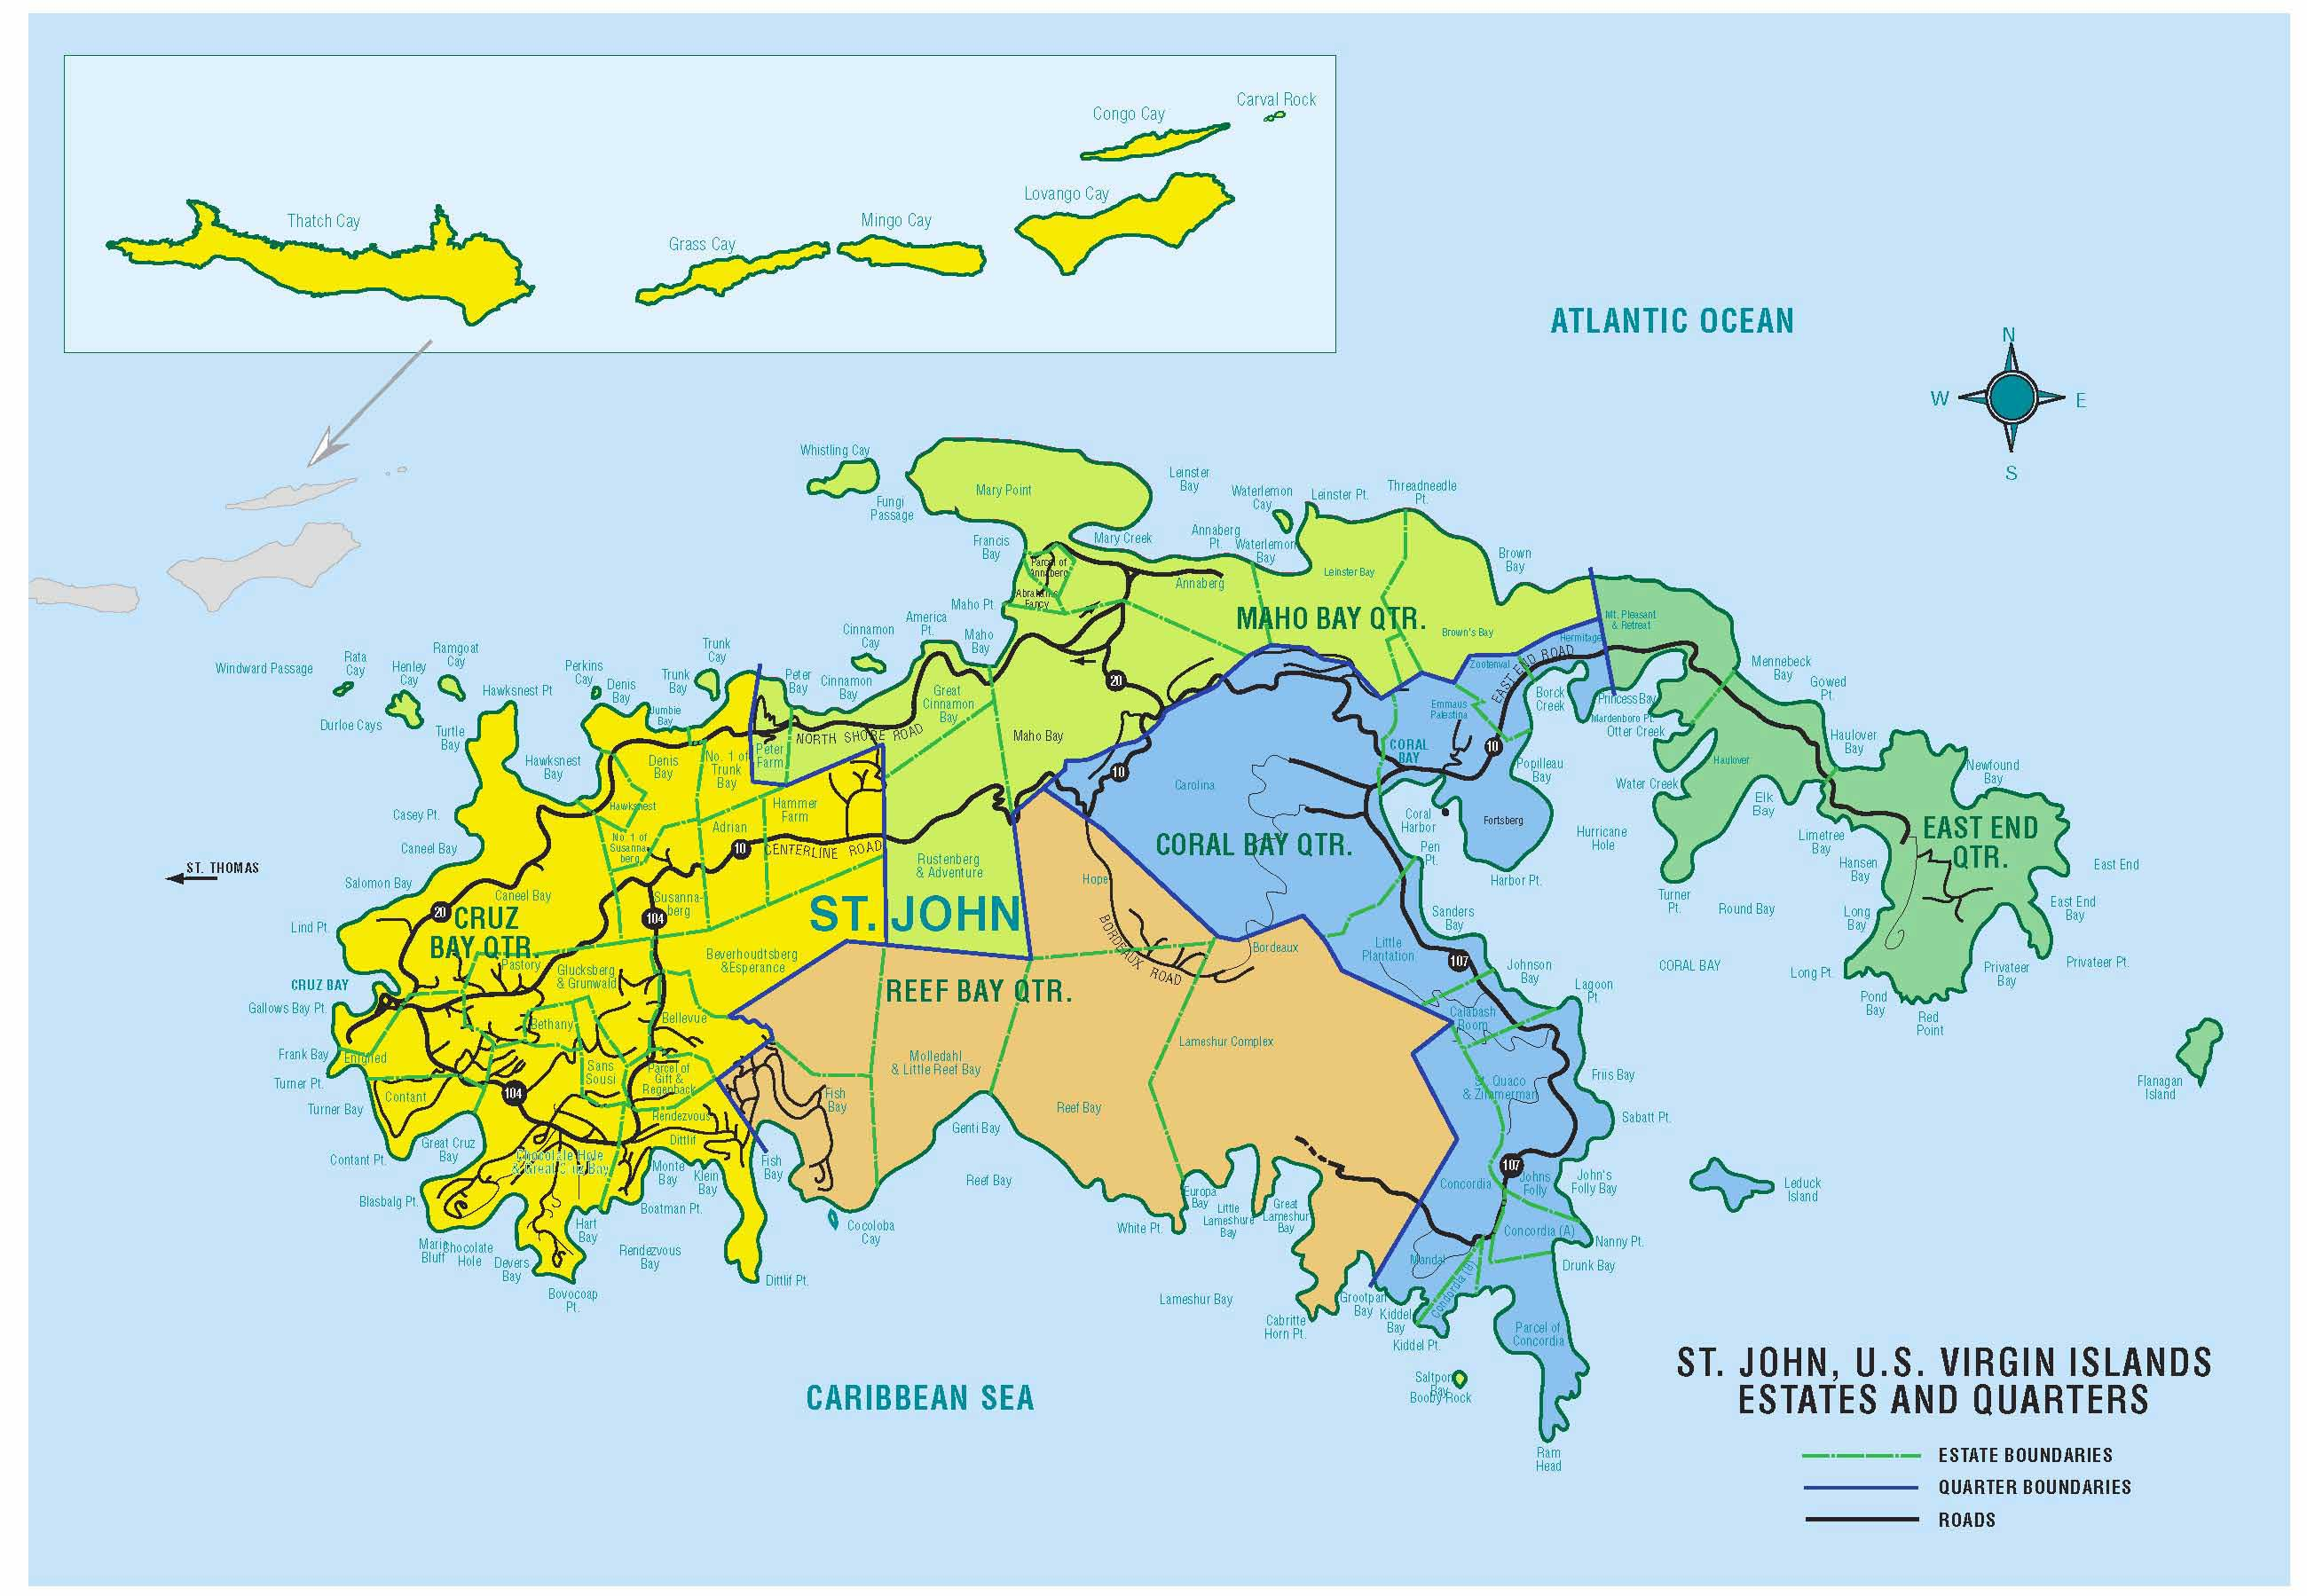 home-james-real-estate-us-virgin-islands-st.-john-map